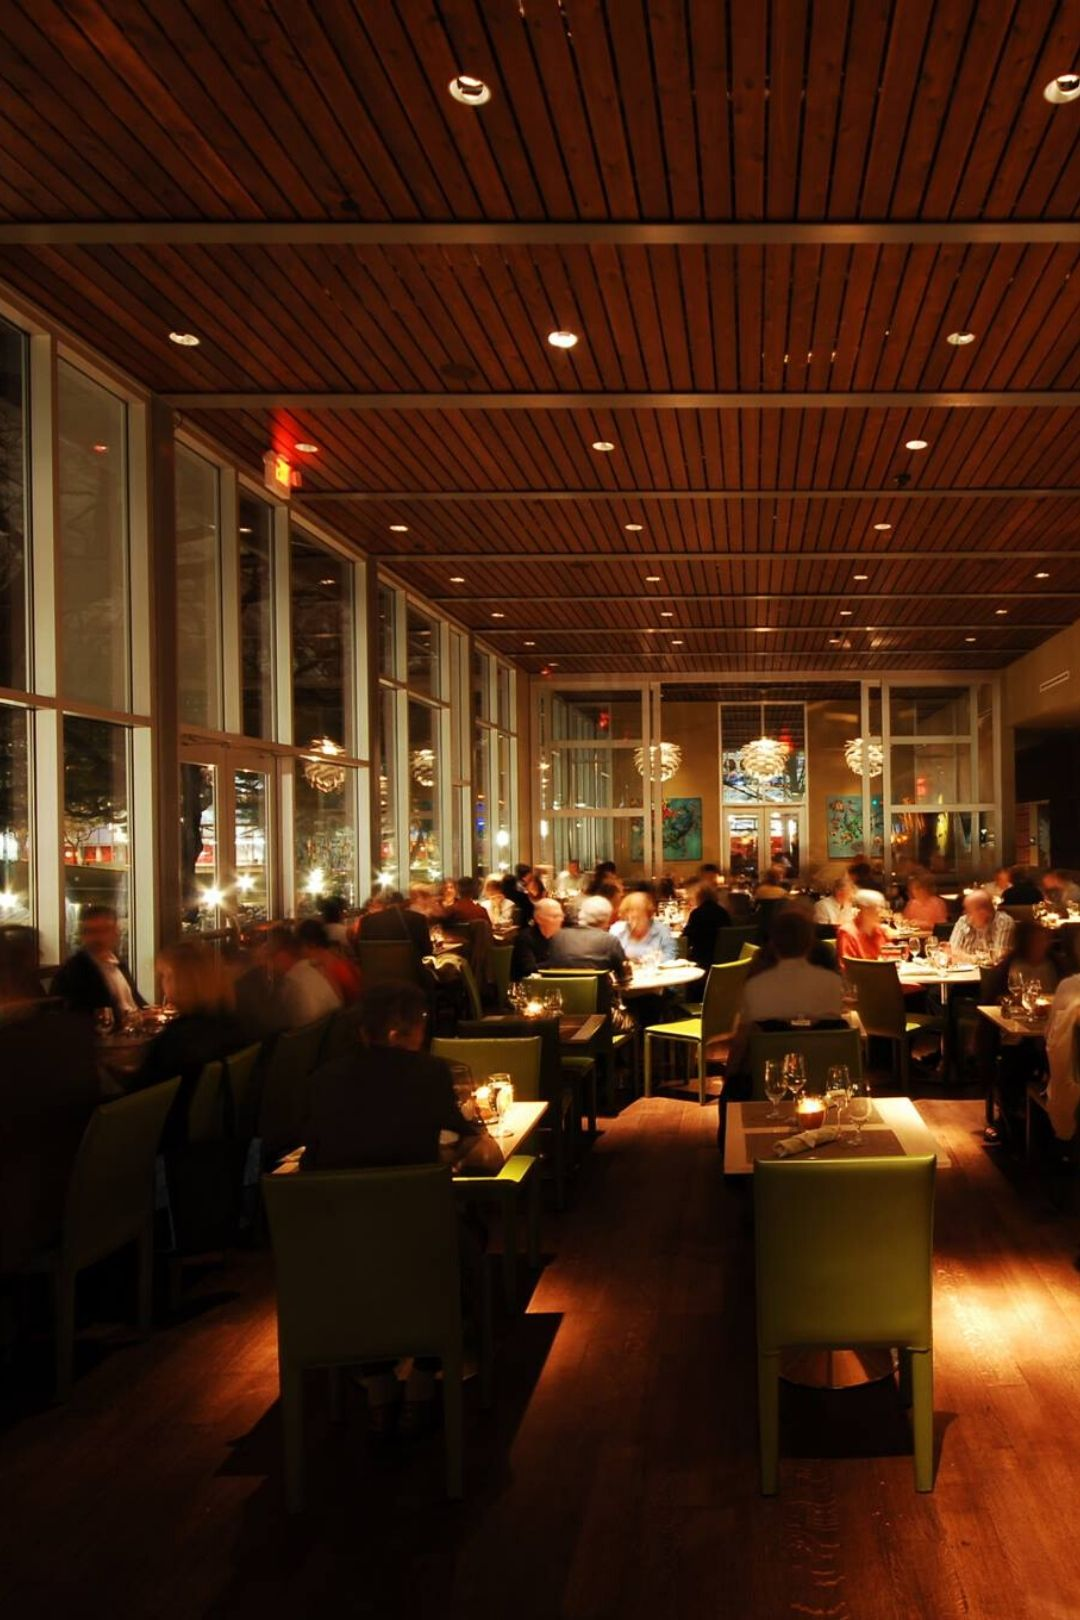 Best Spots For Group Dinners In Houston